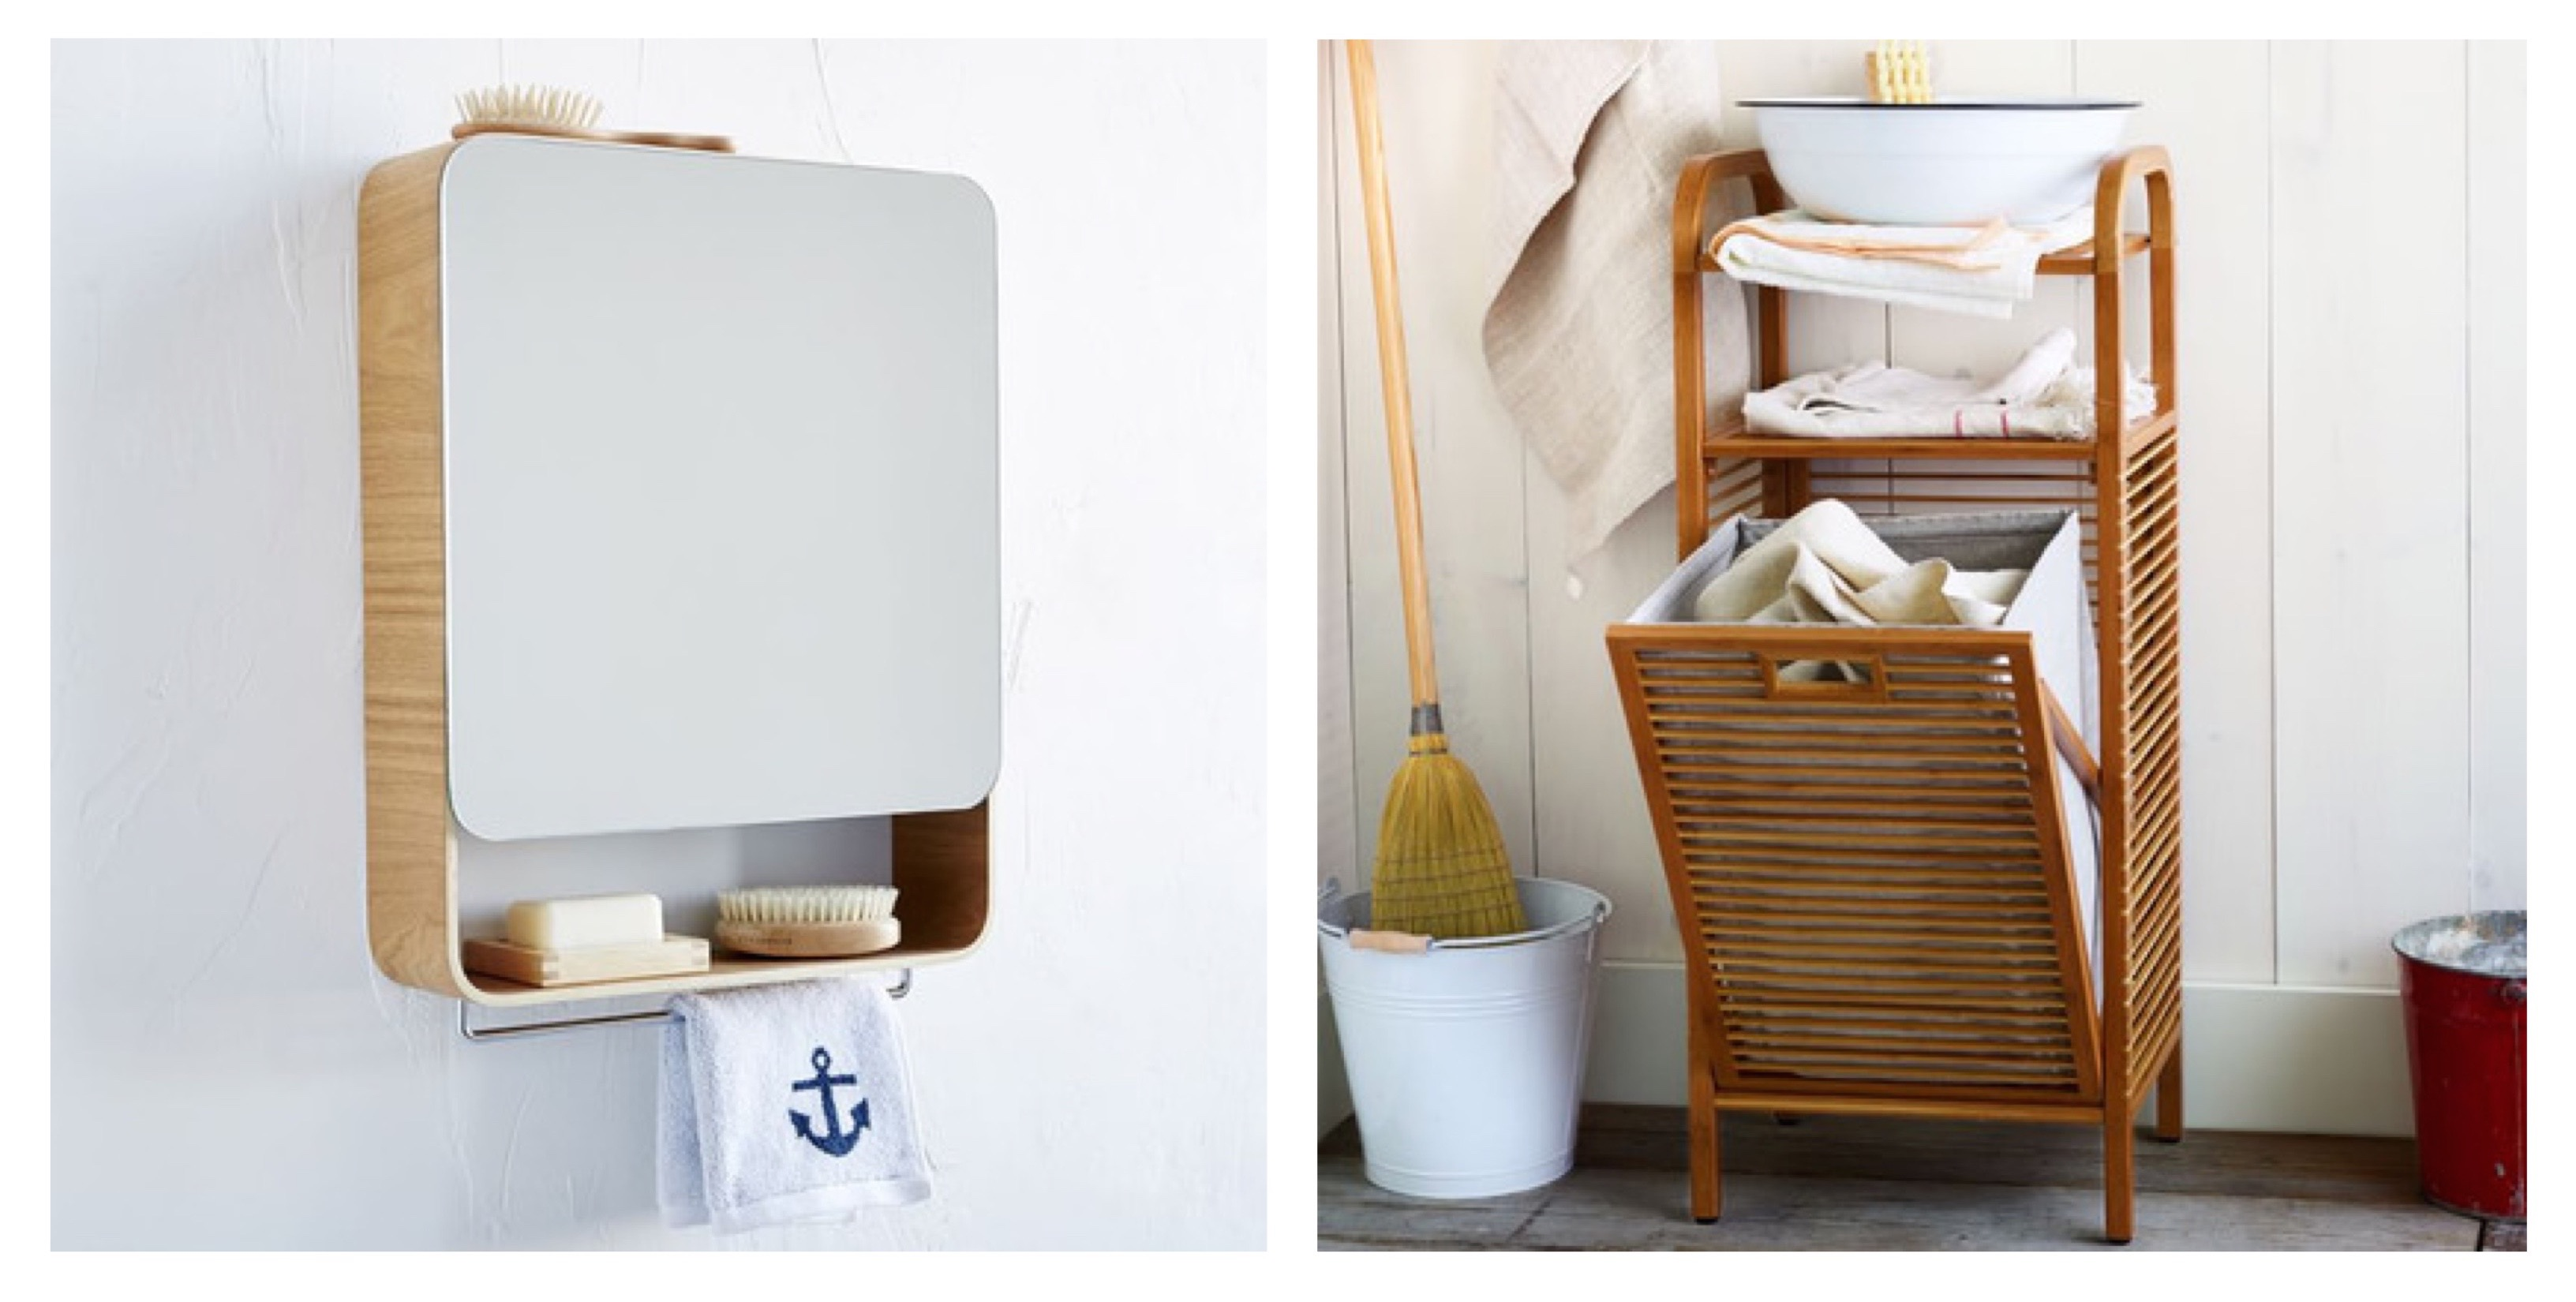 West elm bathroom cabinet - The Universal Expert Bathroom Cabinet Marries Style And Functionality Its Warm Beech Exterior Is Paired With A Full Size Vanity Mirror That S Mirrored On